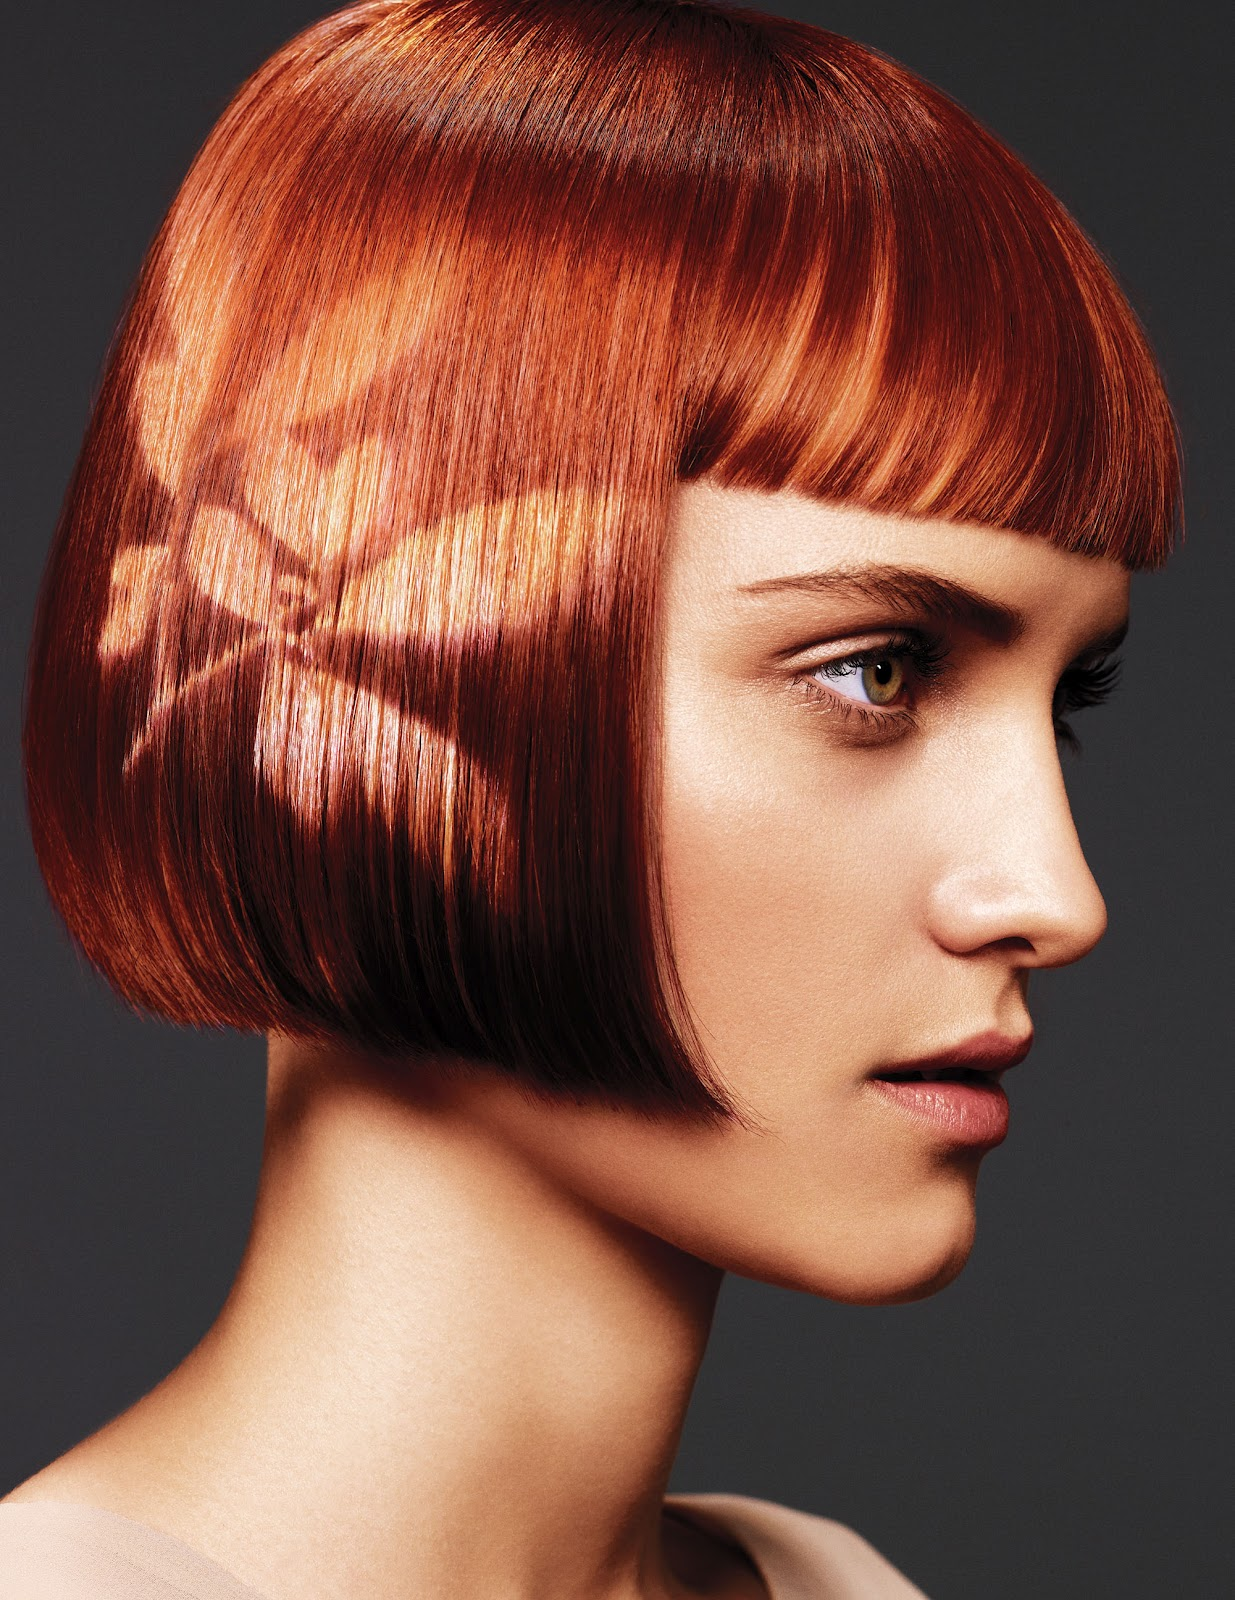 Hair Salon Hair Dye : Aveda Full Spectrum Hair Color Hair Style Trends and Tips - Page 2